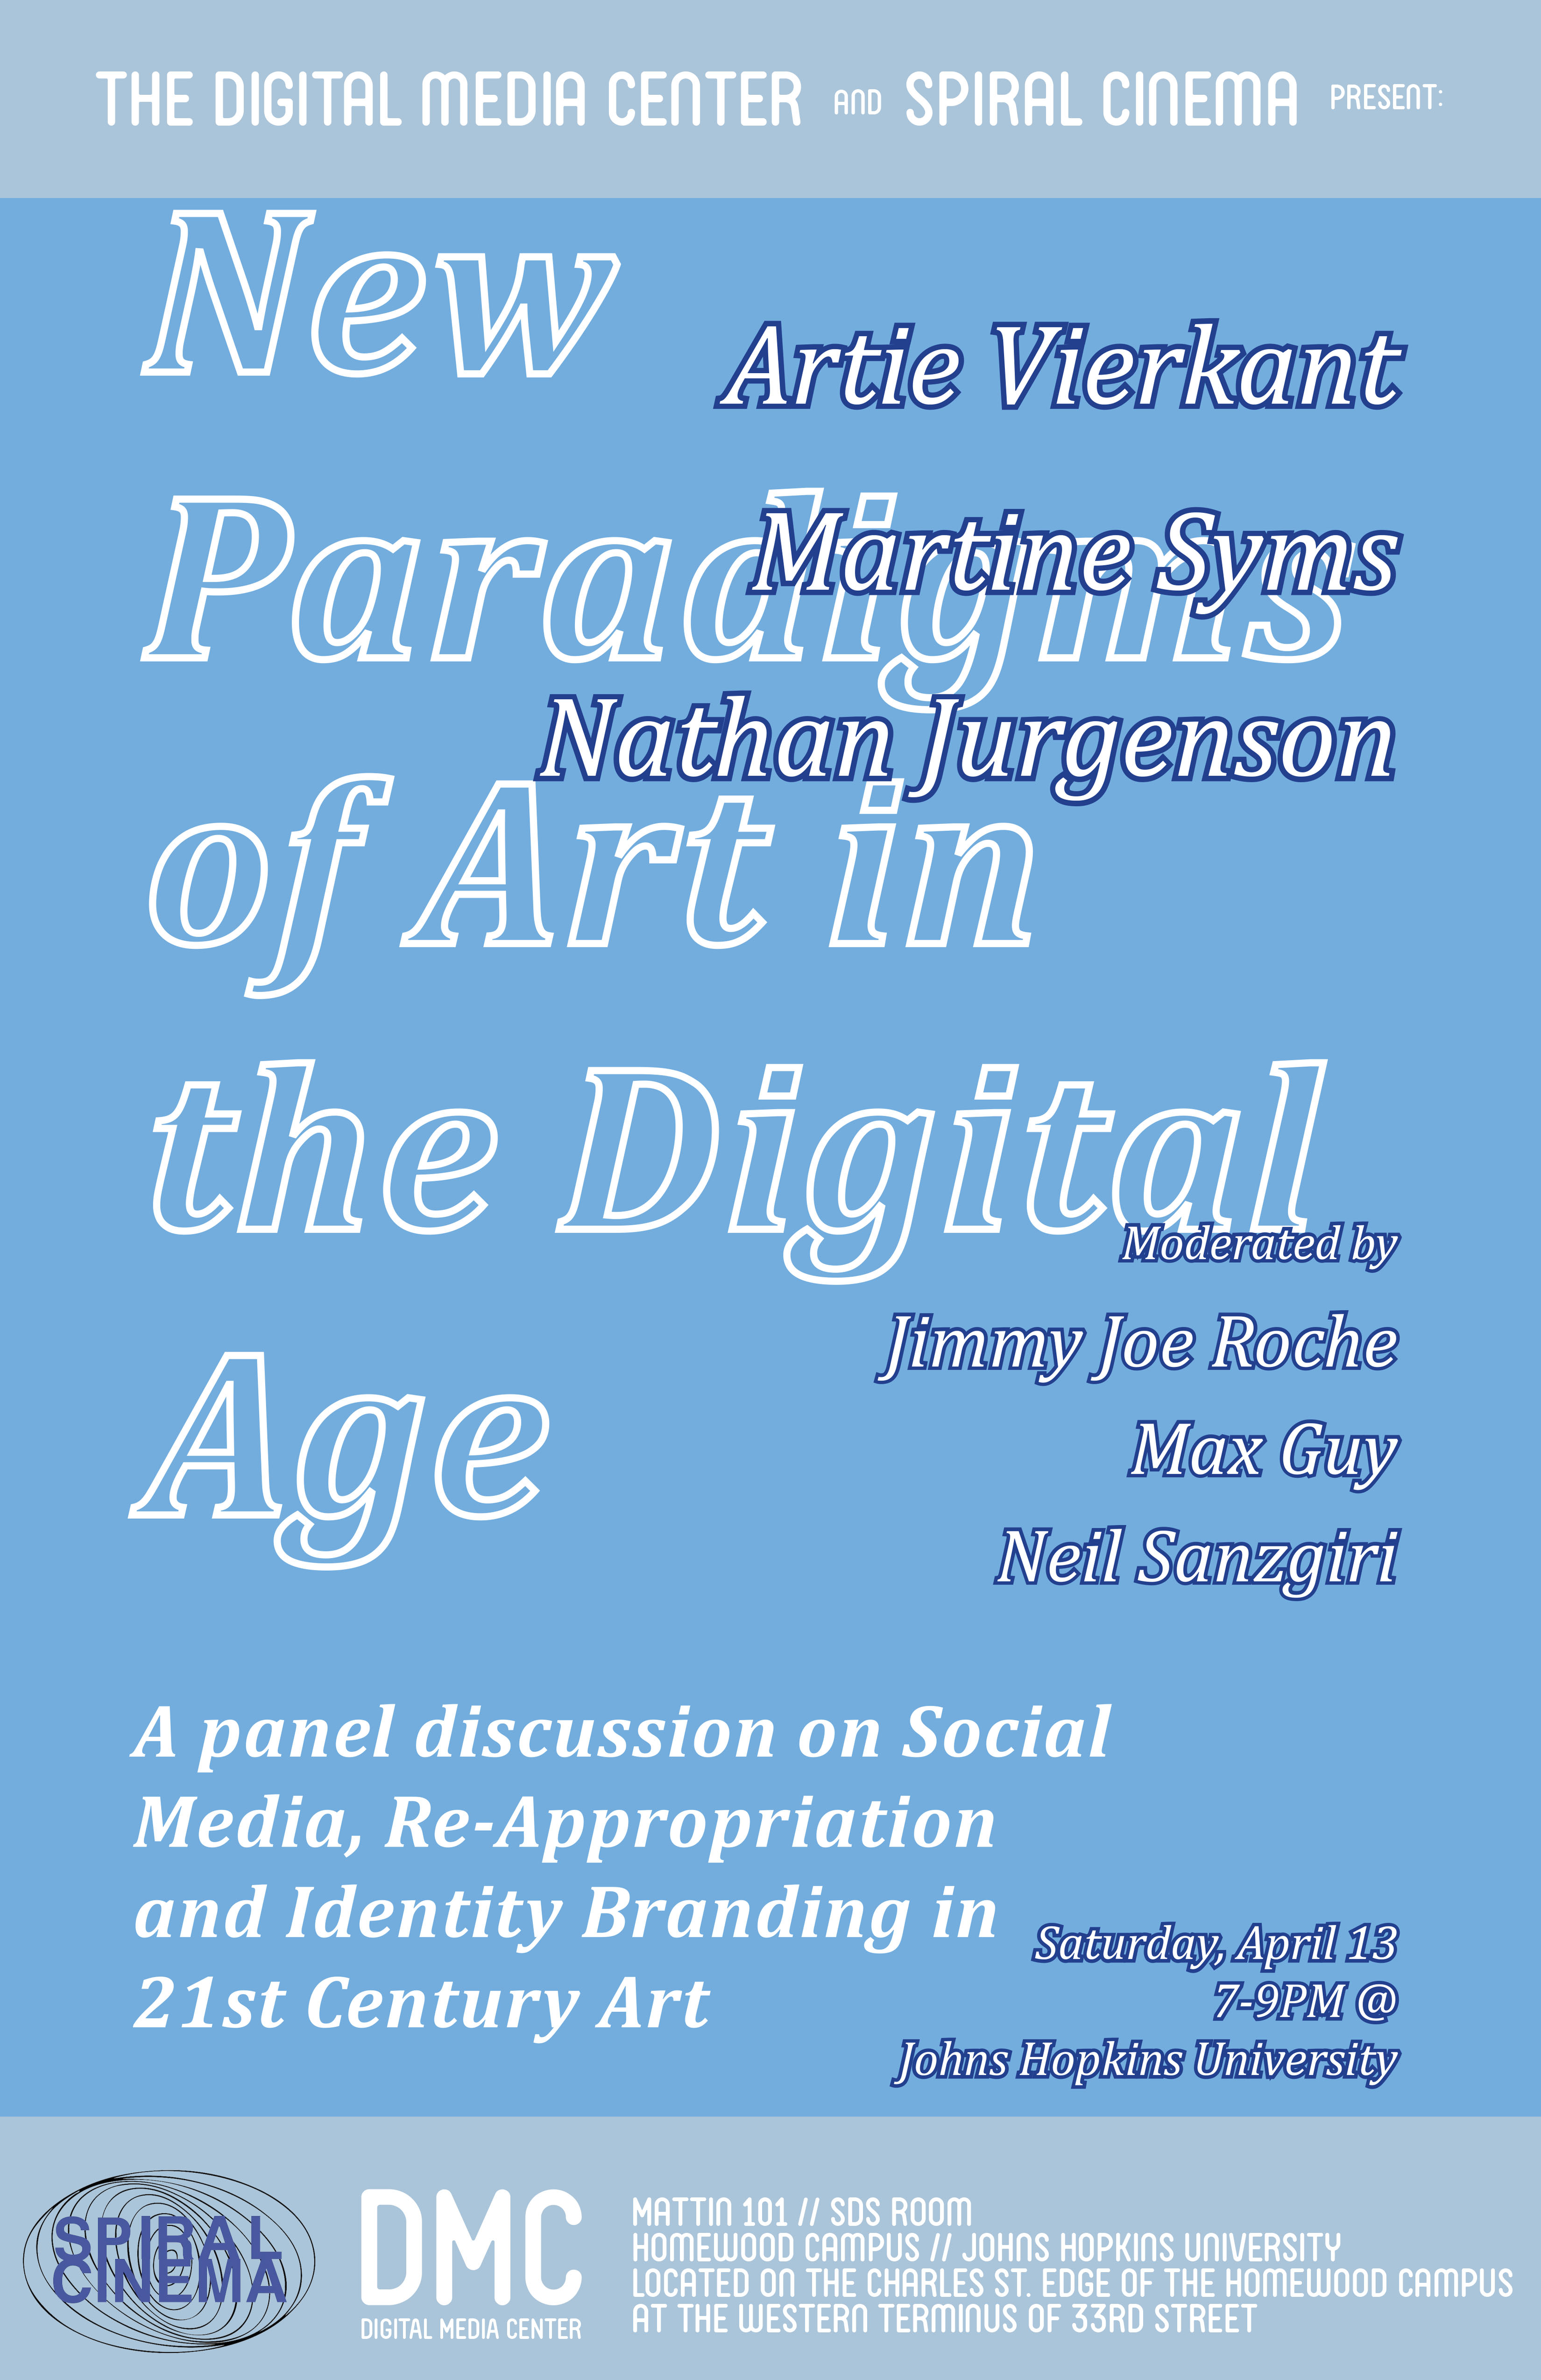 Poster for New Paradigms of Art in the Digital Age event